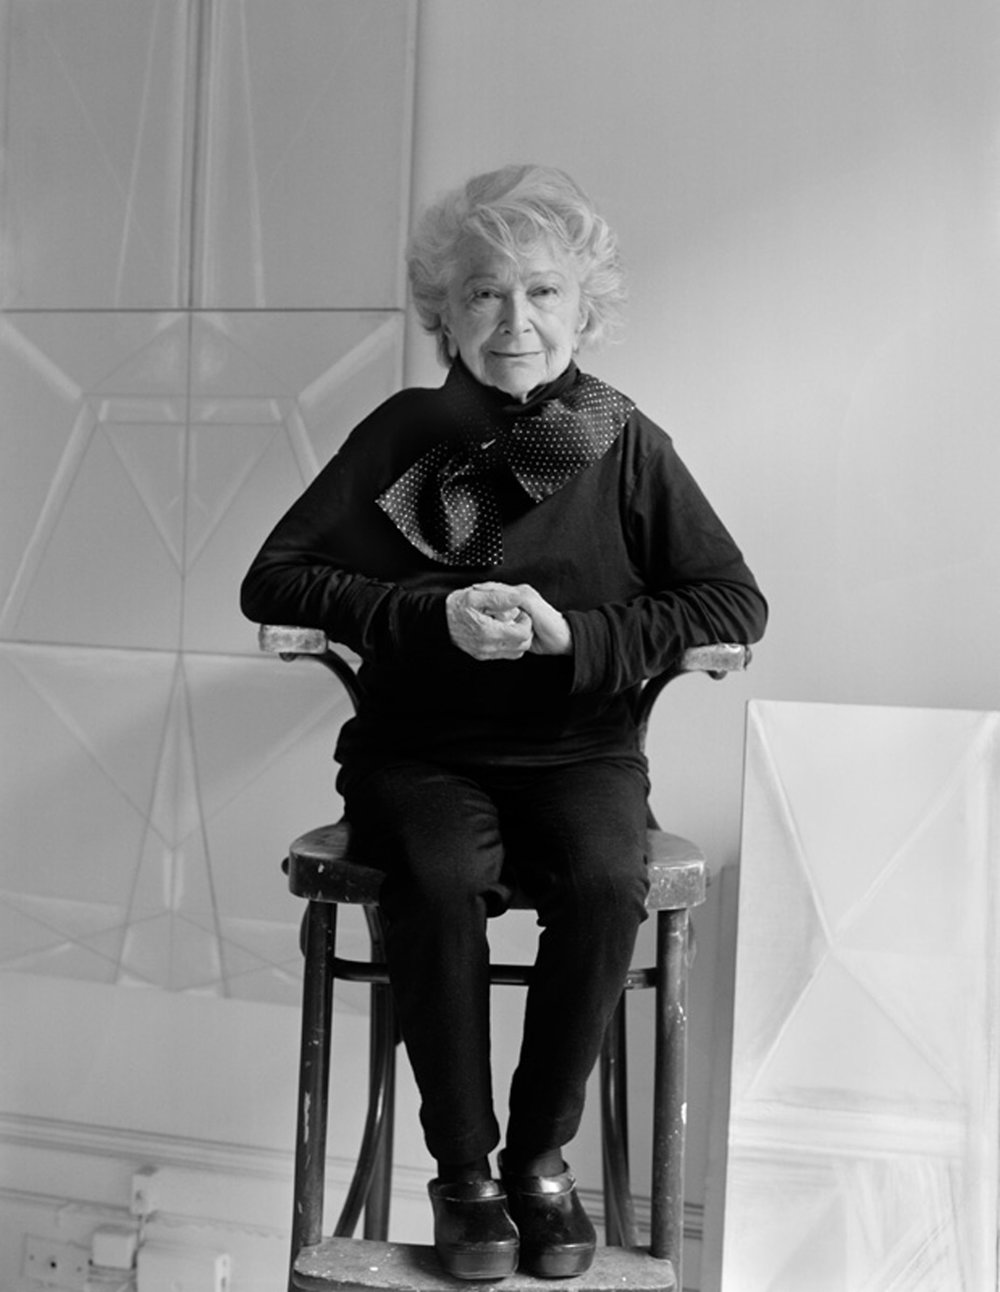 Portrait of Hedda Sterne by Barbara Yoshida, 6 February 1992, © Barbara Yoshida